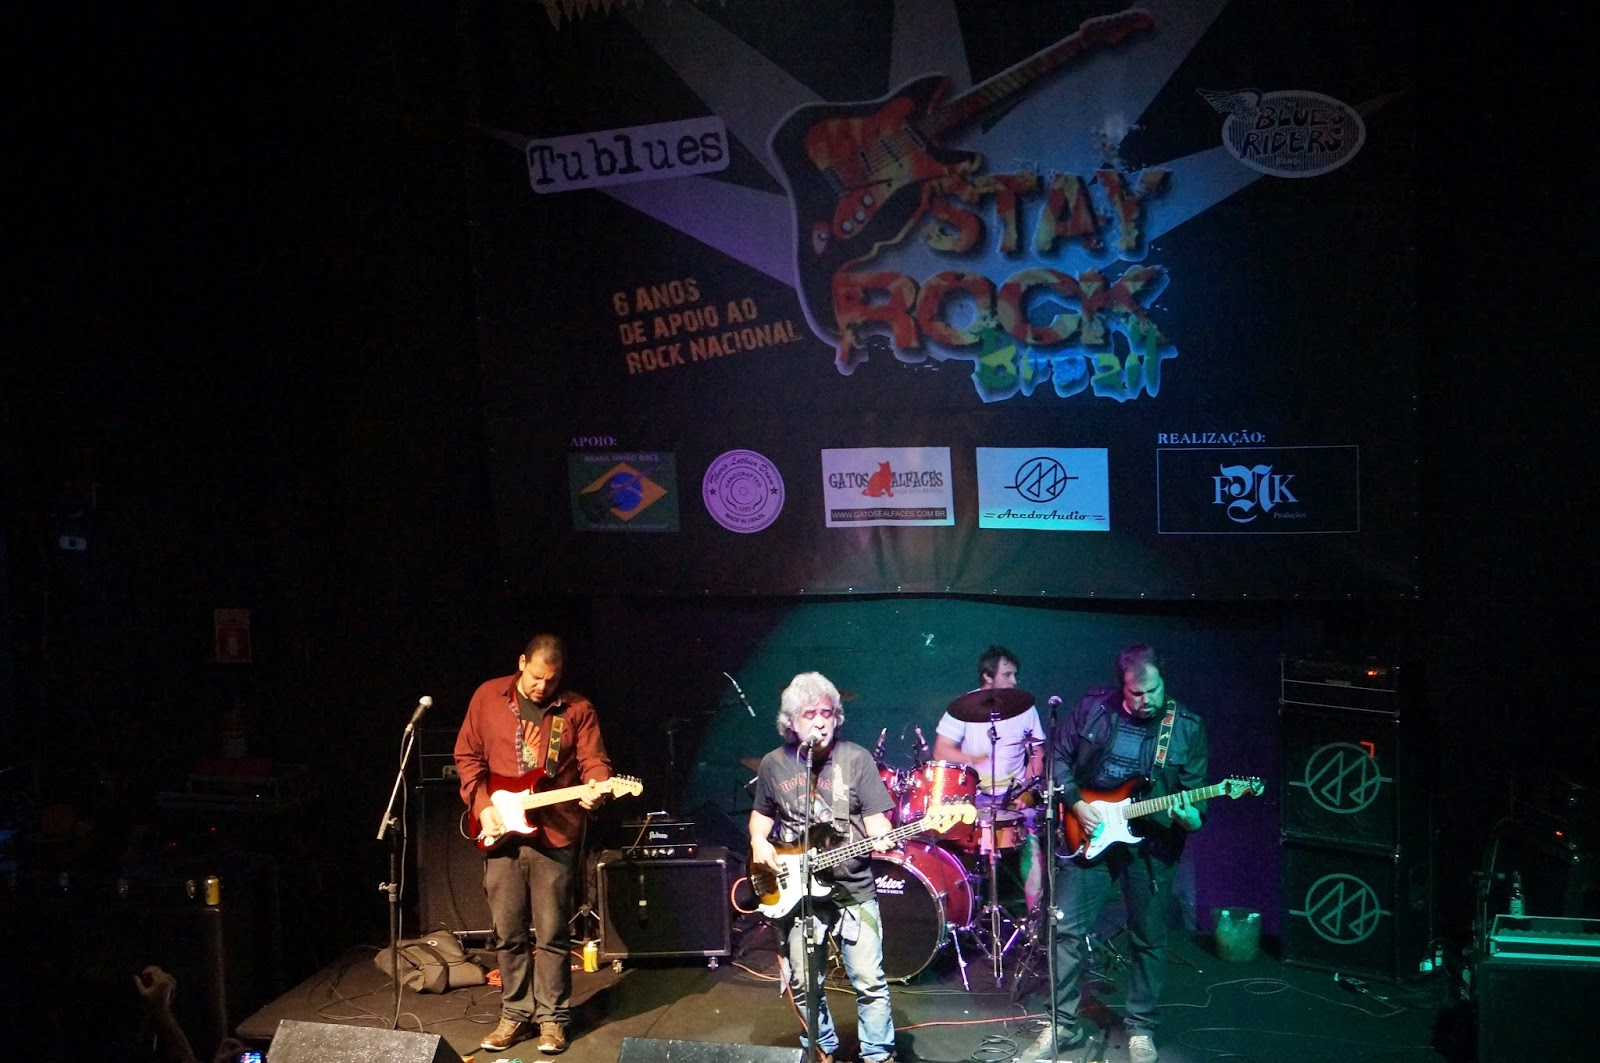 6° Aniversario Stay Rock